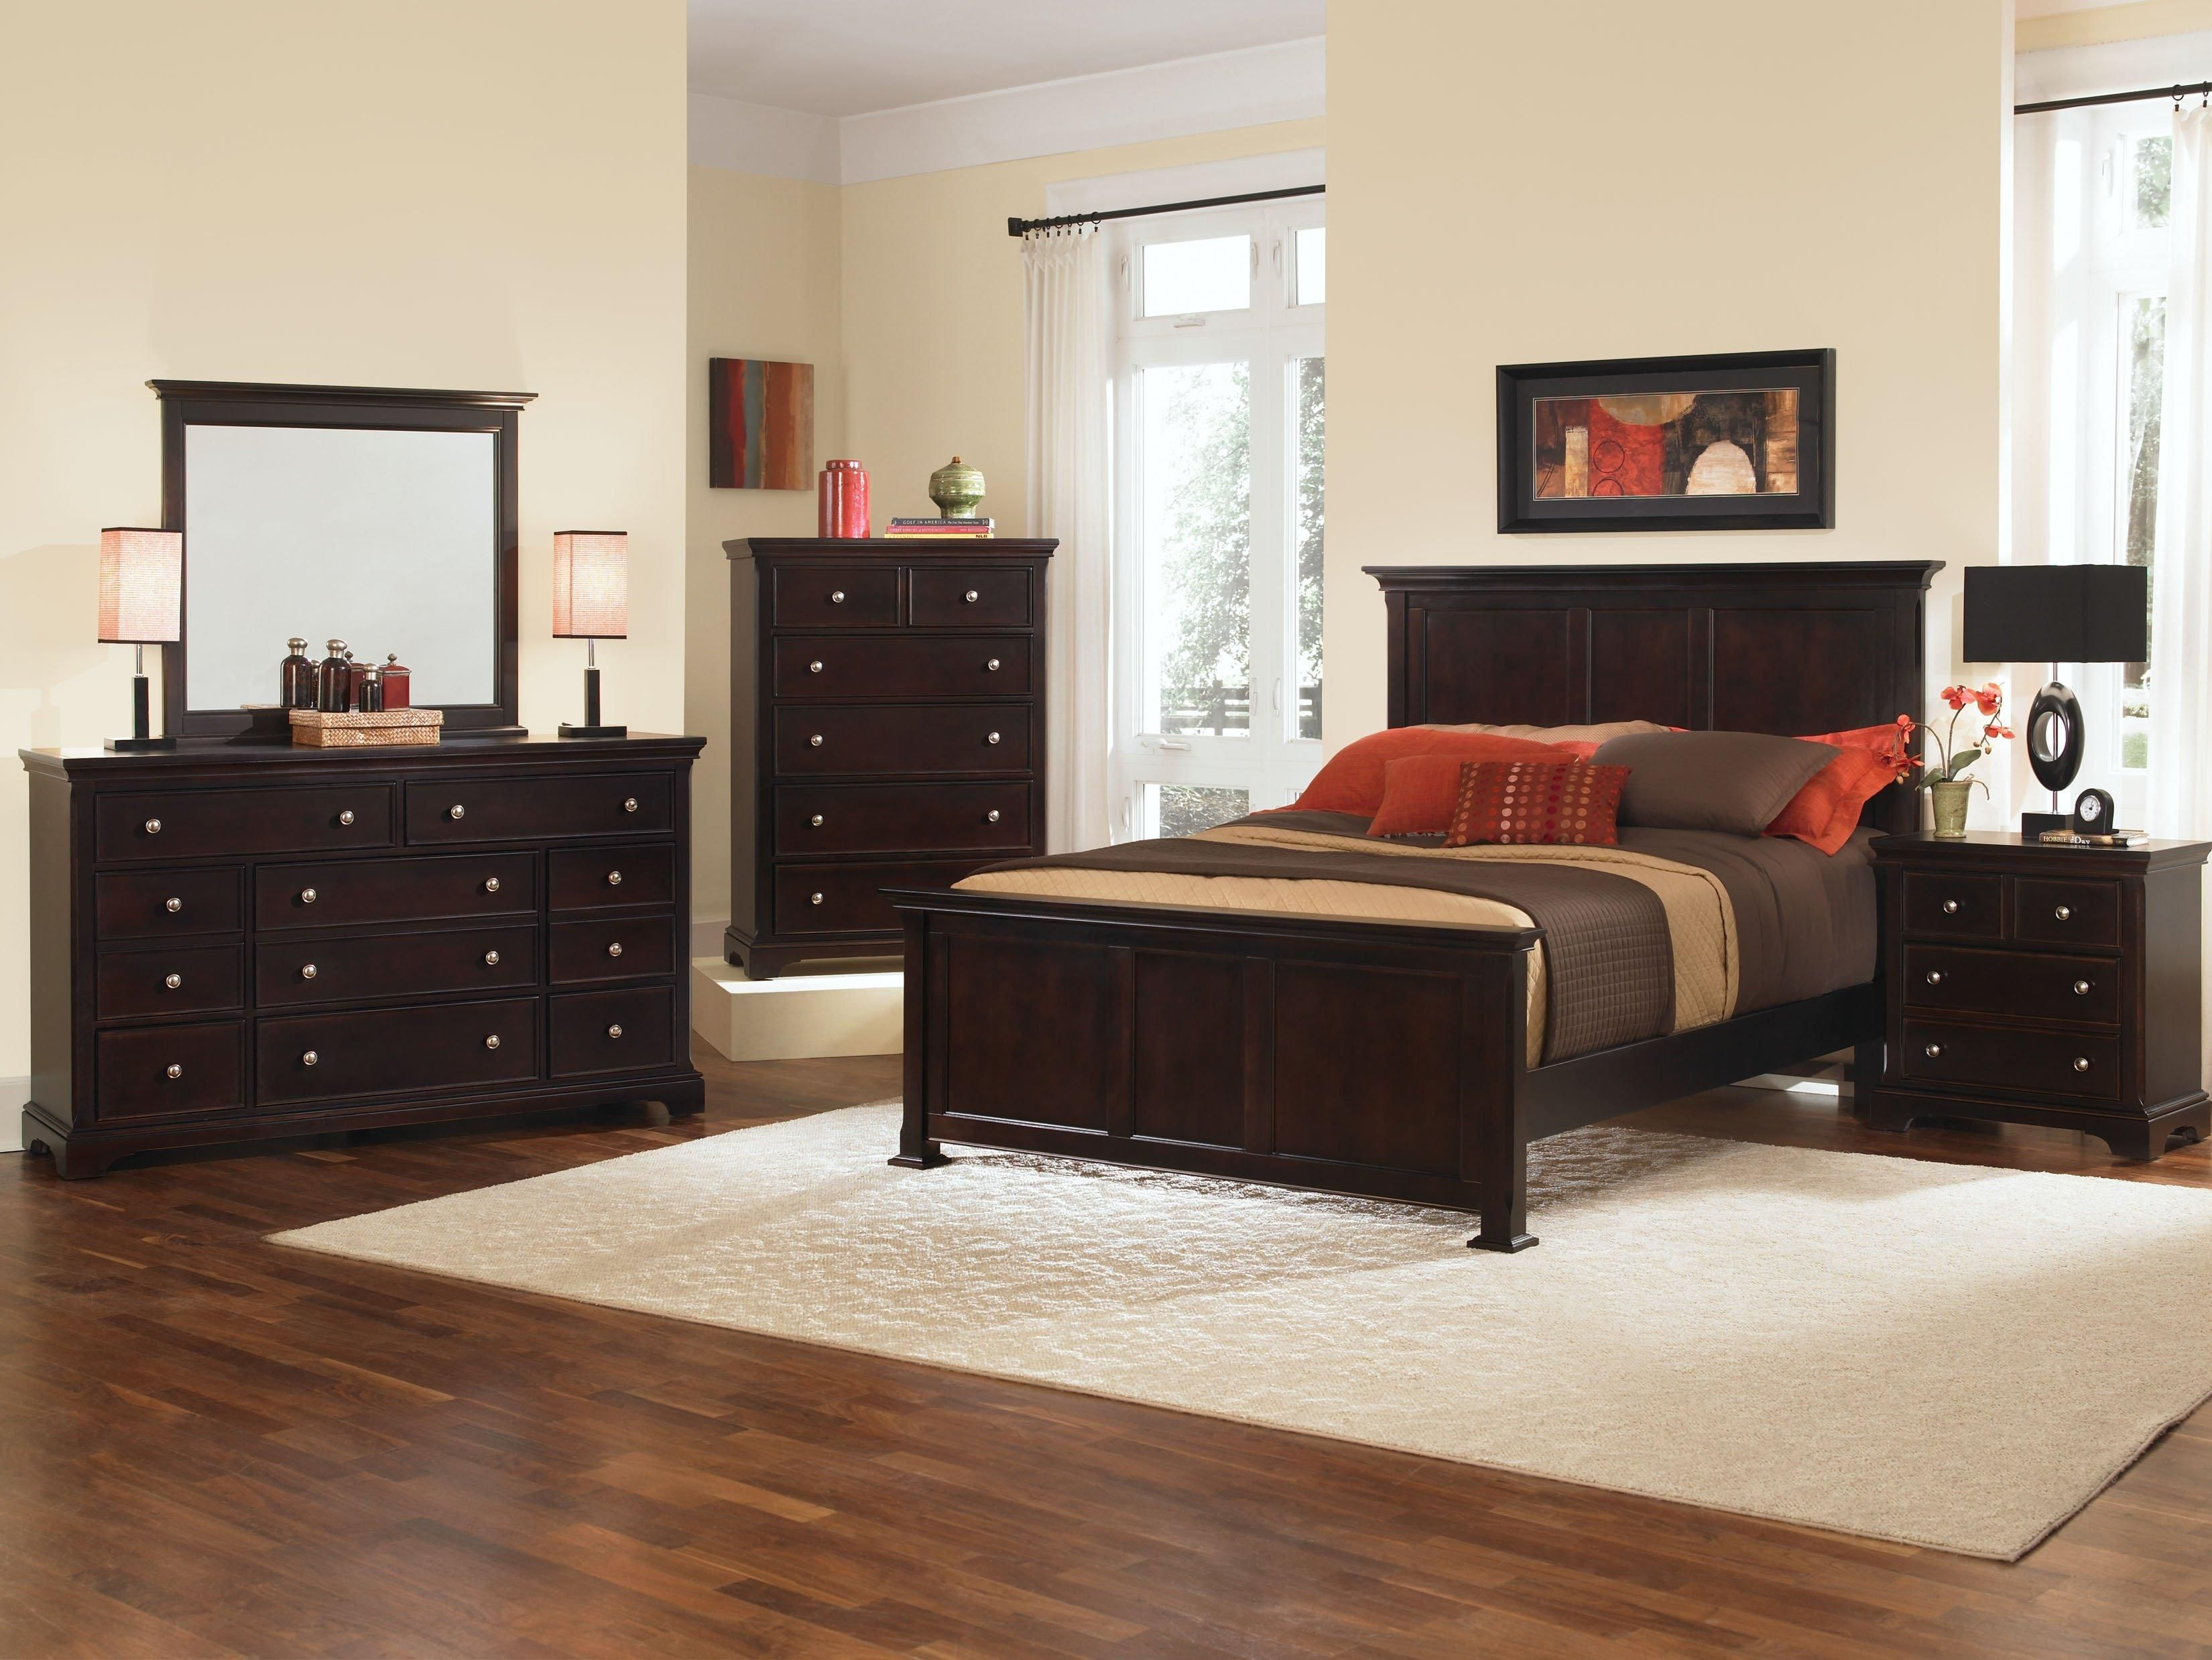 This beautiful Made in the USA set features a dark cherry